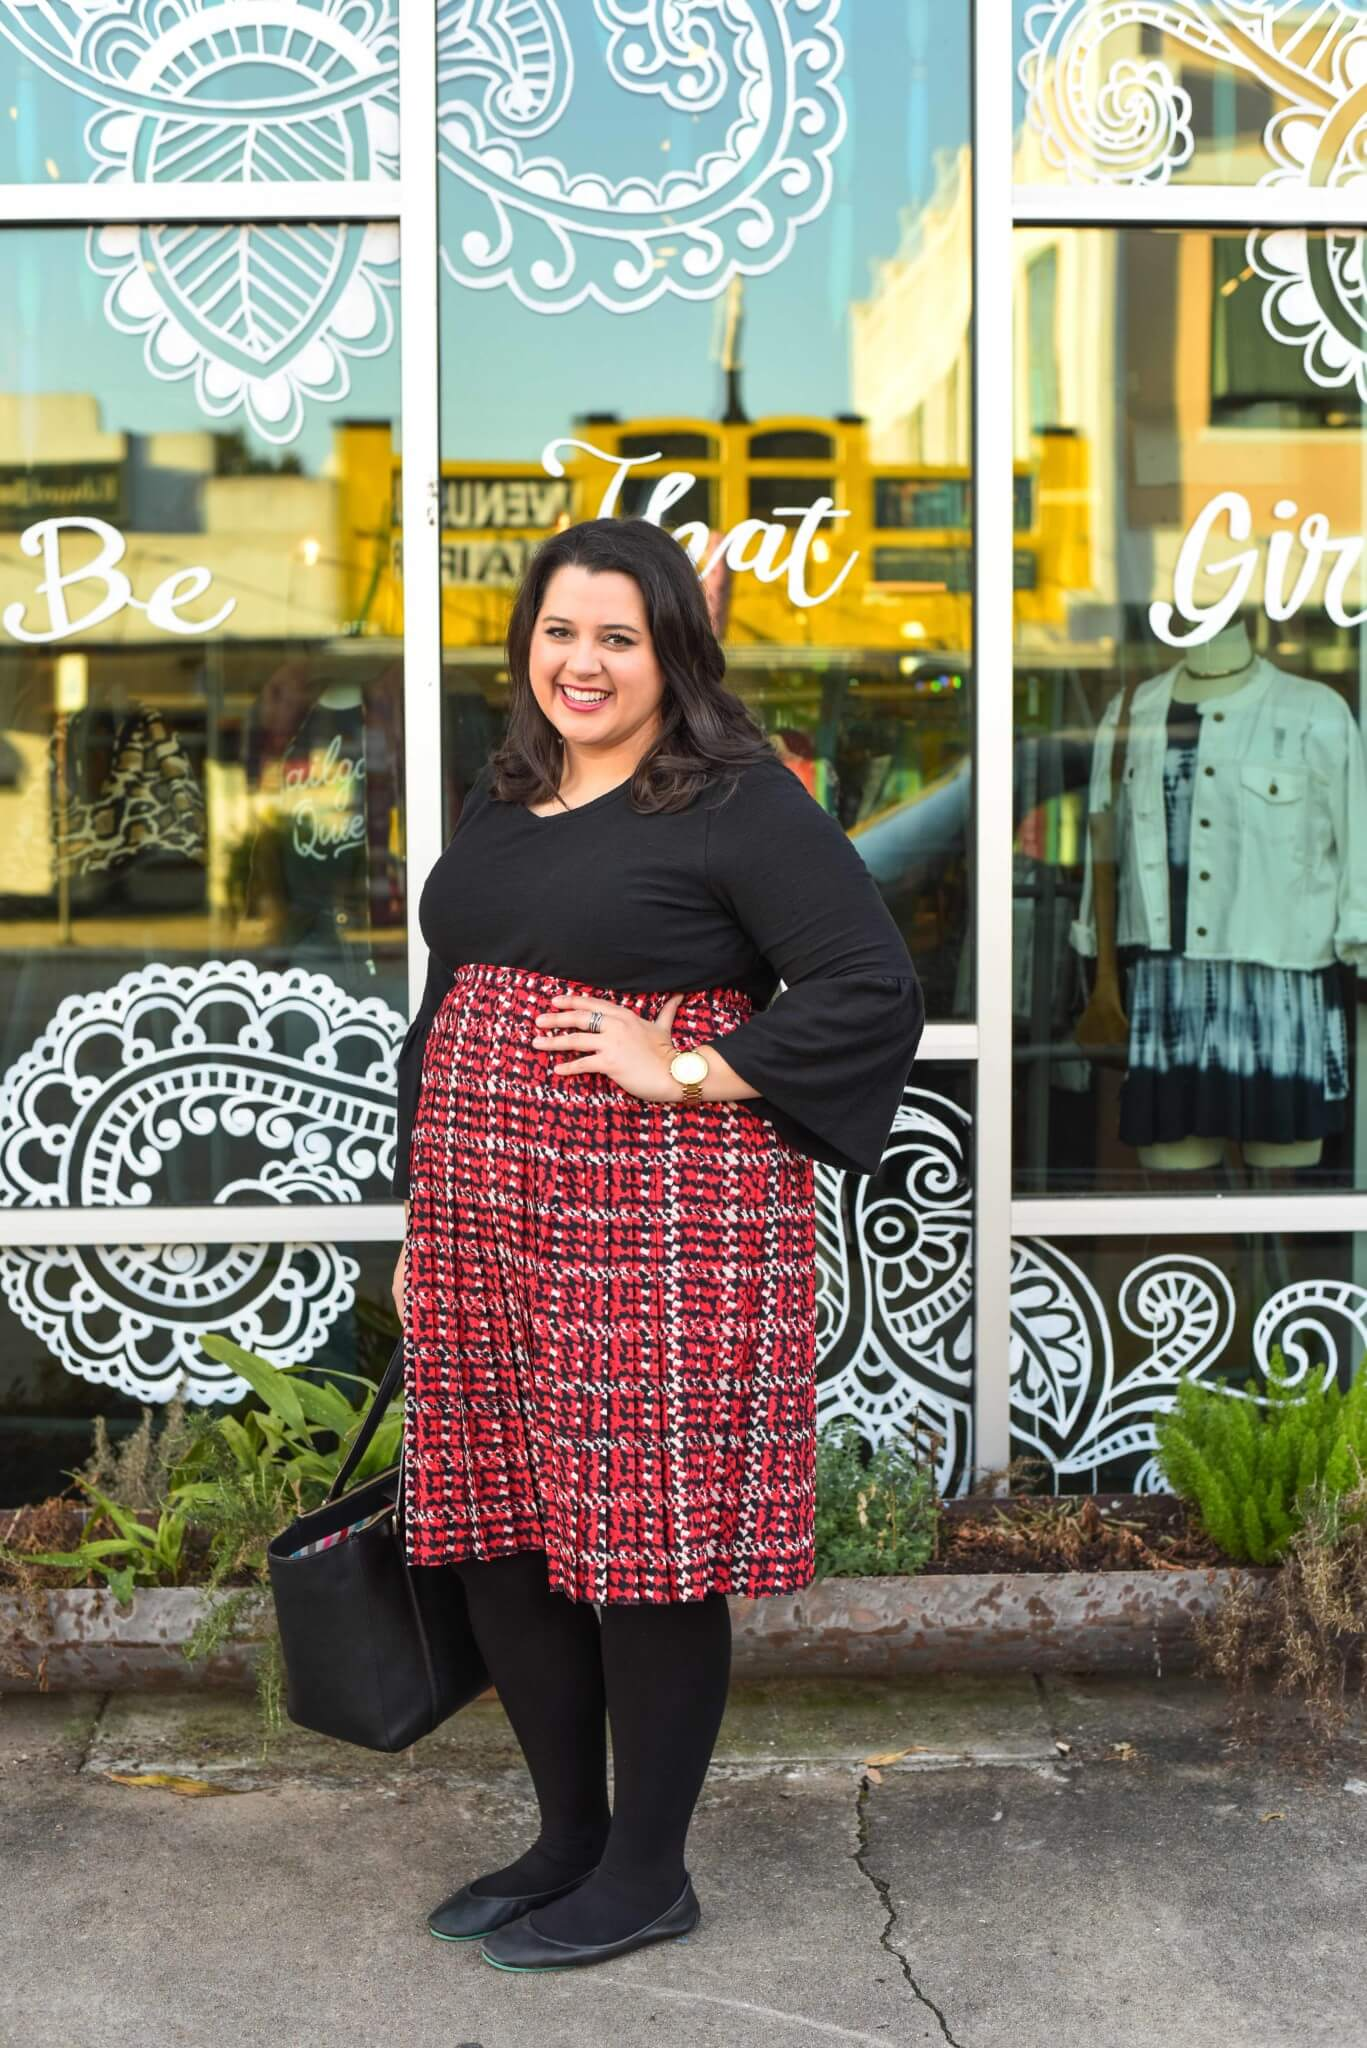 Dressing for all of the holiday season functions can be difficult epecially when you work long hours. Emily Bastedo from the curvy style blog Something Gold, Something Blue, is sharing her solution by styling a red plaid skirt and unique black sweater from Eloquii paired with gorgeous and comfortable Just My Size blackout tights and Tieks.